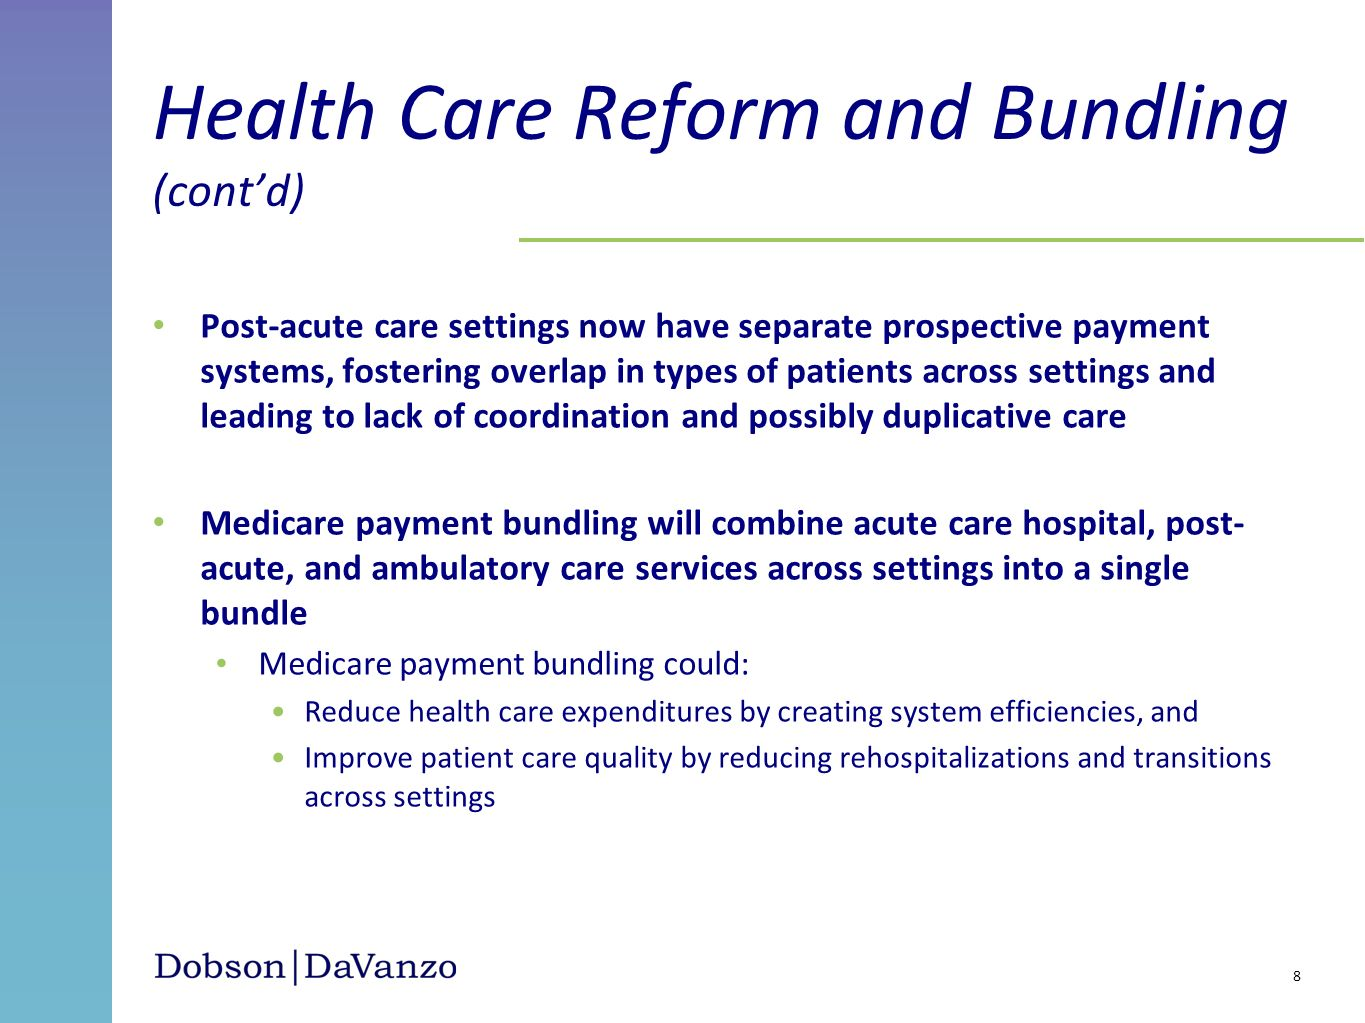 Health Care Reform and Bundling (cont'd)